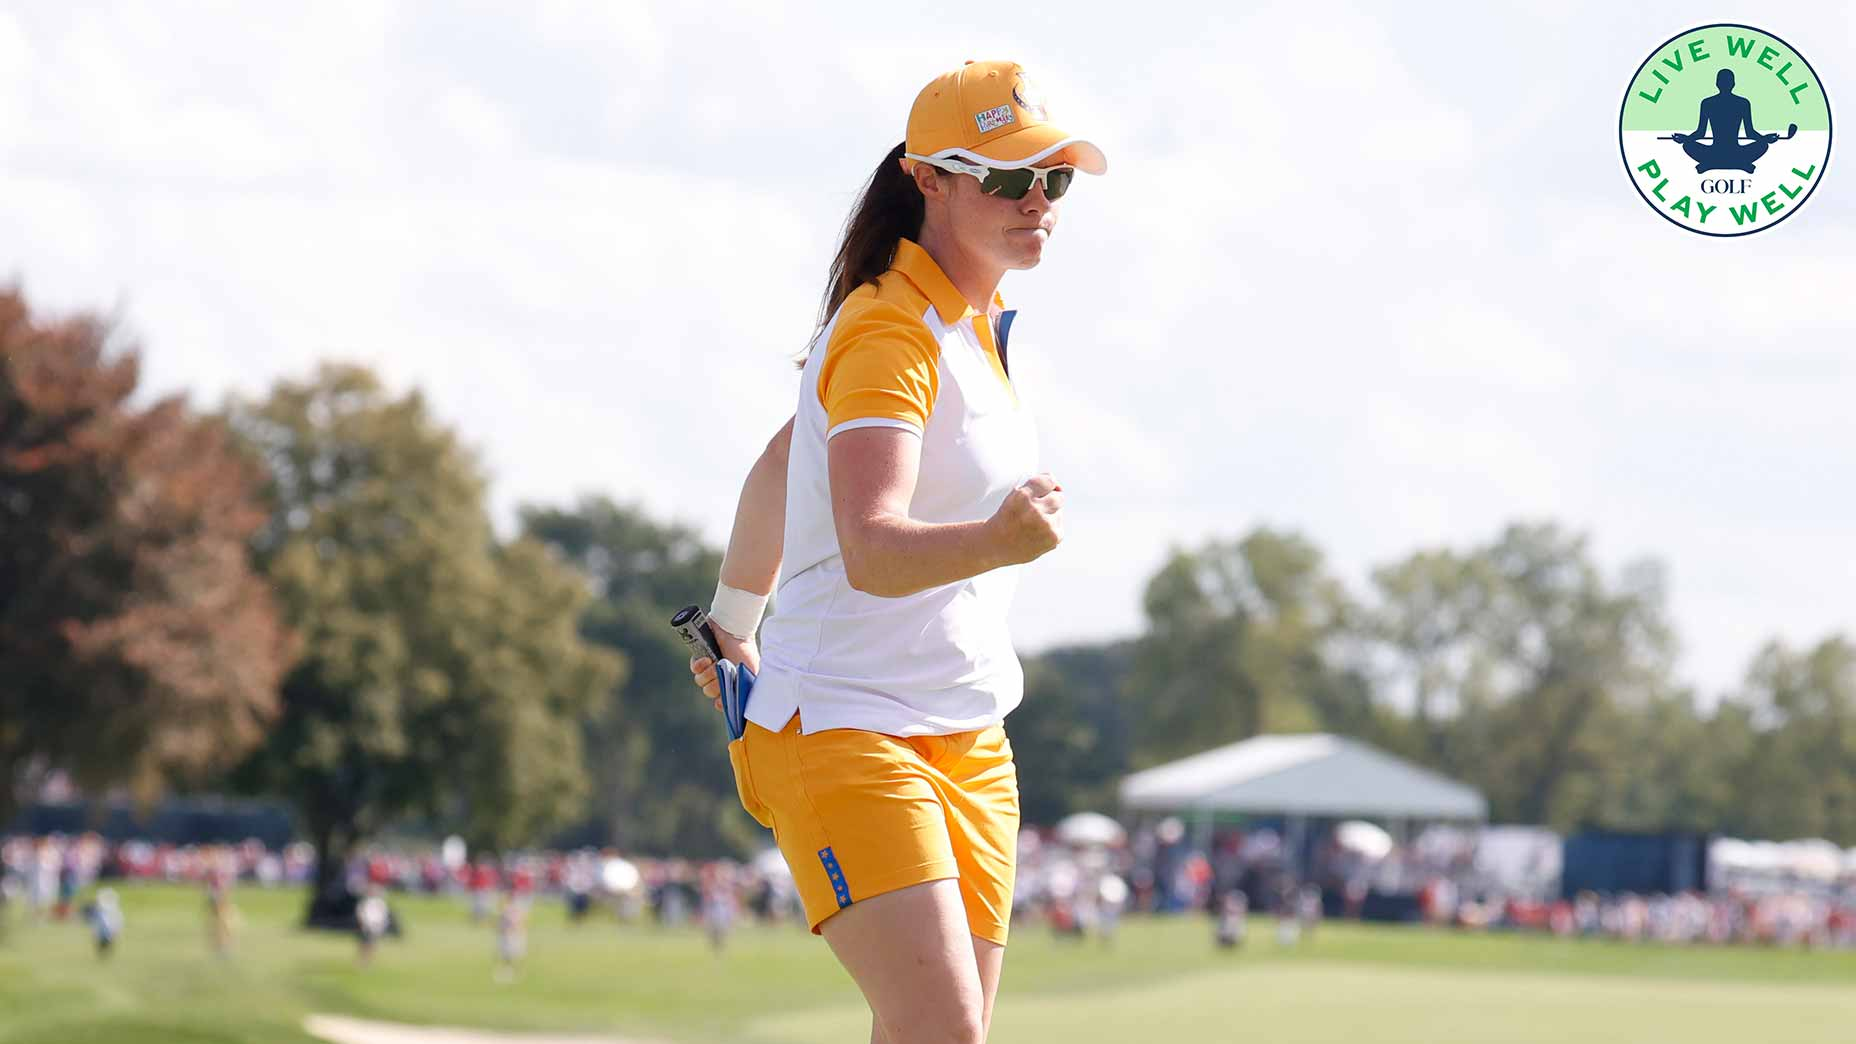 Leona Maguire's Solheim Cup performance was fueled by her commitment to her fitness routine.